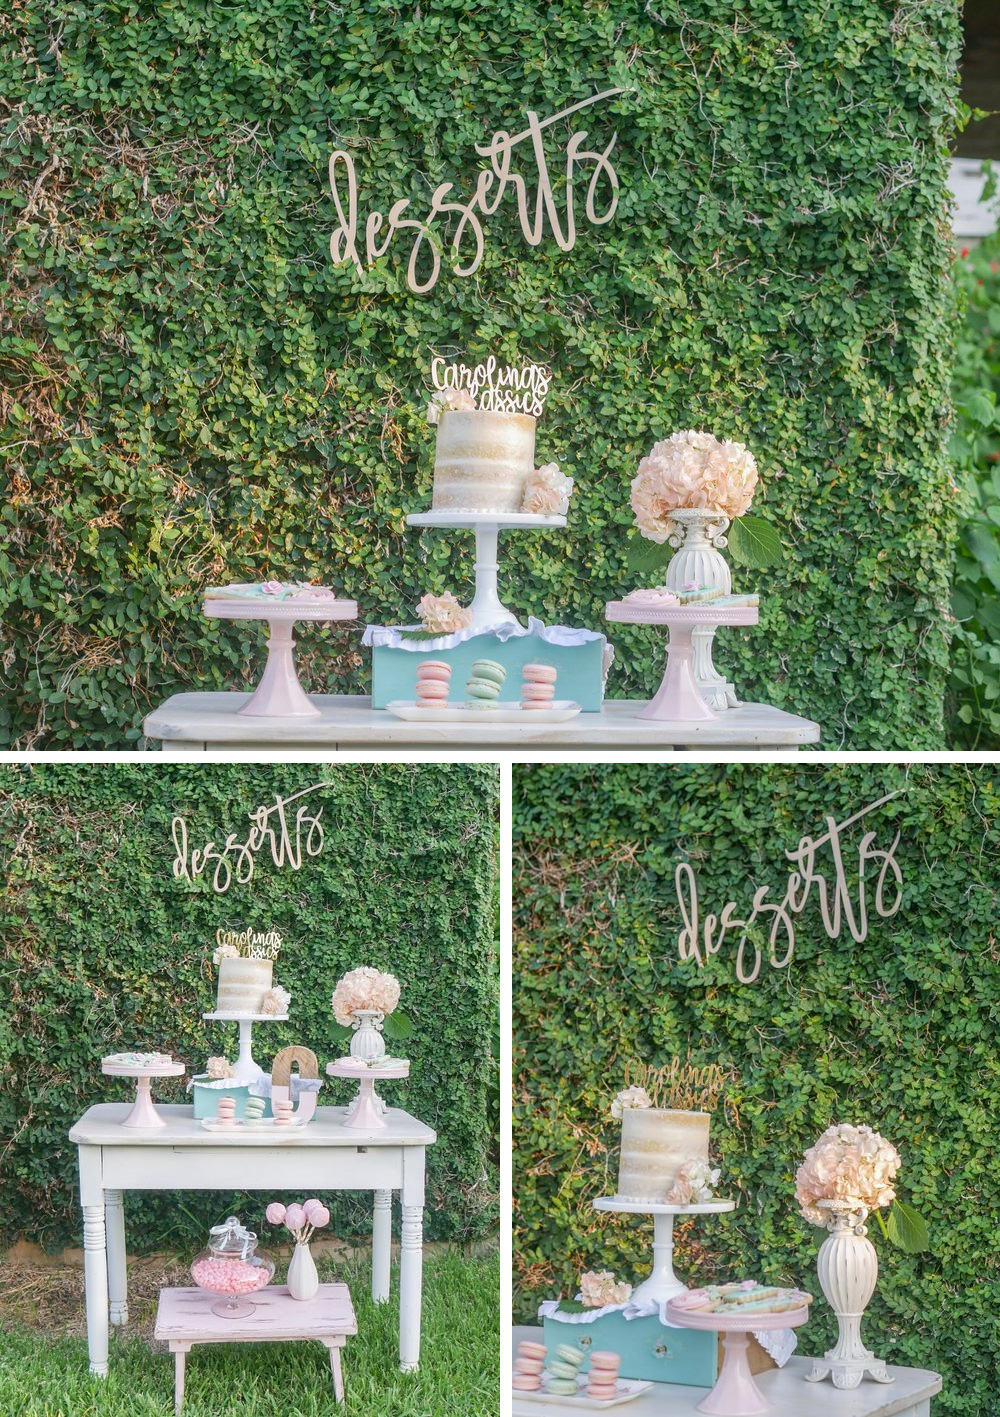 Setting up your party outdoors can be super easy. Use greenery as your backdrop and simply add a cute sign with script letters and you have the best spot for the dessert table. See how to finish setting up your dessert party outdoors on Mint Event Design www.minteventdesign.com #dessertparty #partytips #partyplanning #partyideas #diyparty #desserttable #outdoorparty